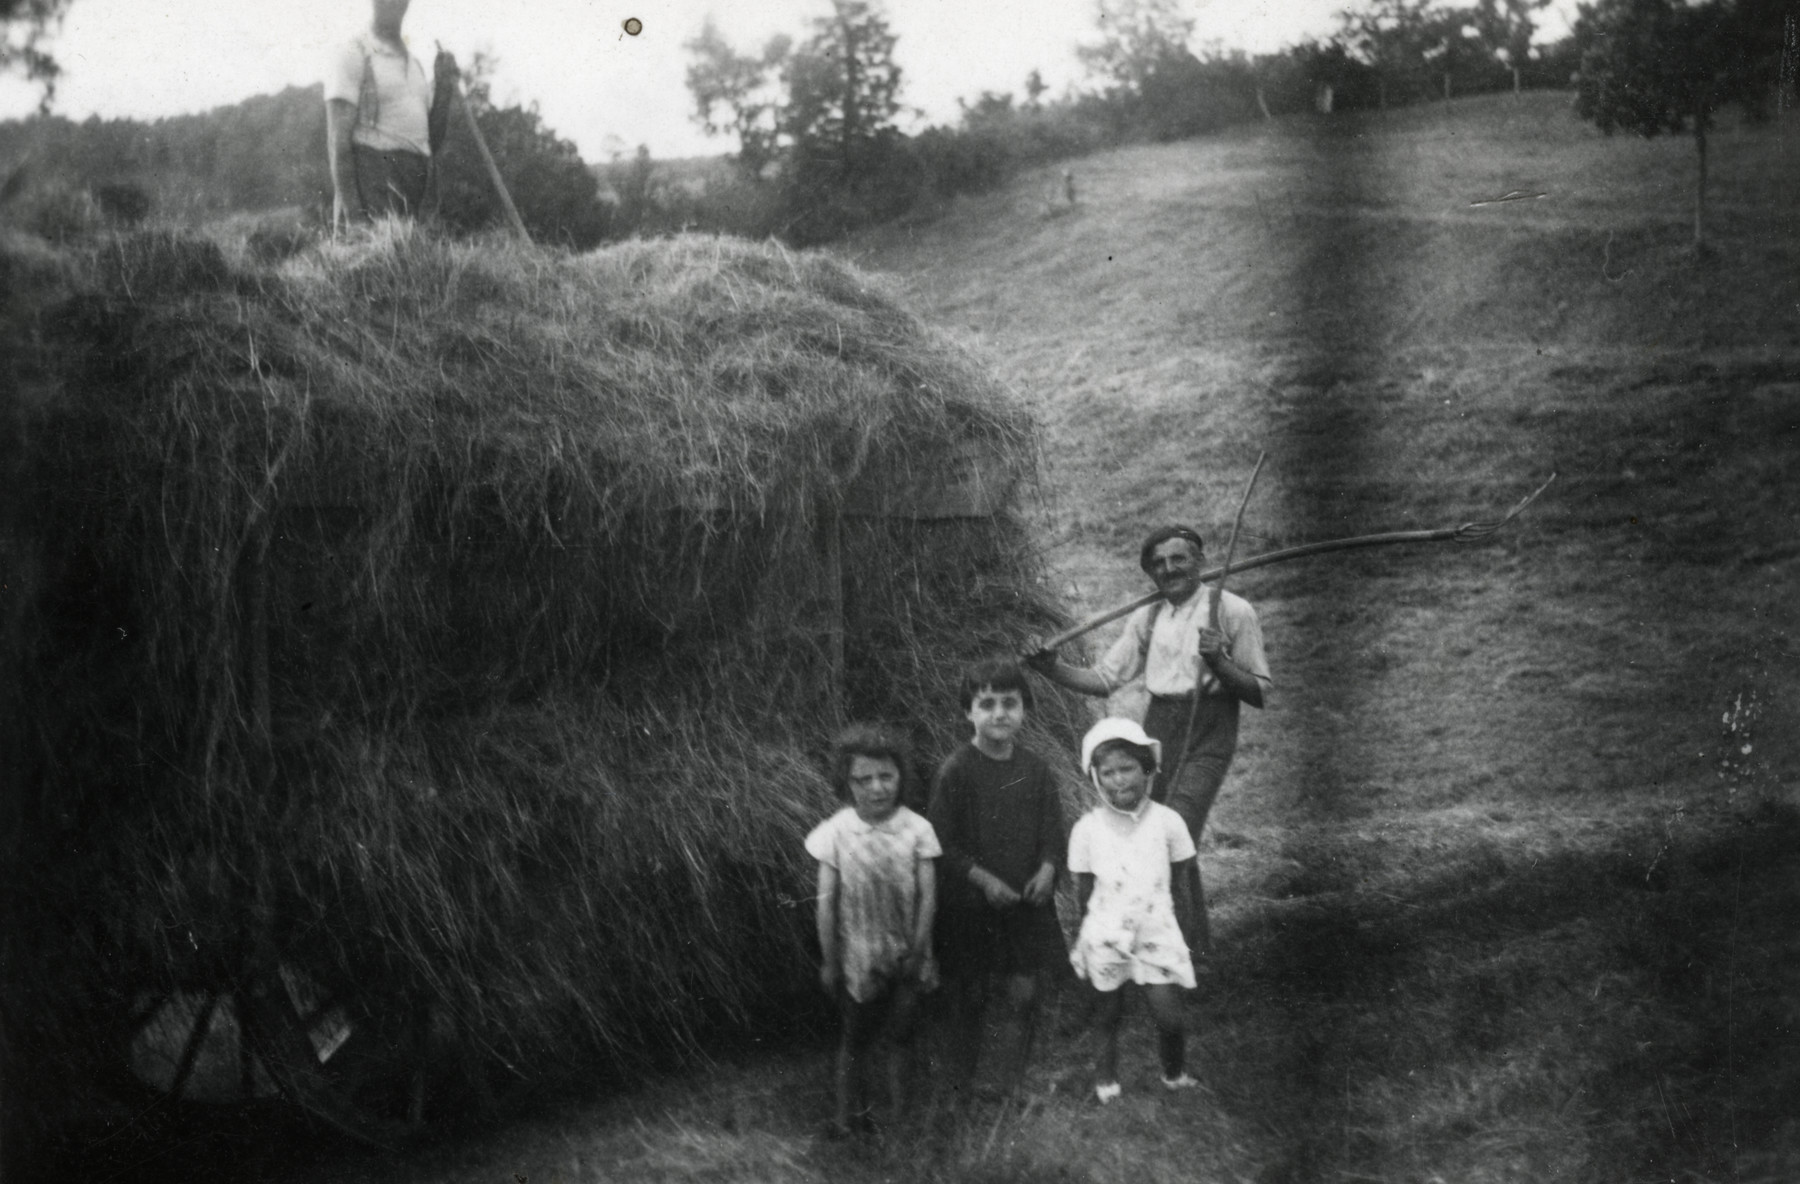 Beatrice Heffes, her father's employer Mr. Combes, and his two daughters pose in front of a haystack. Another farmer can be seen standing on top of the haystack.